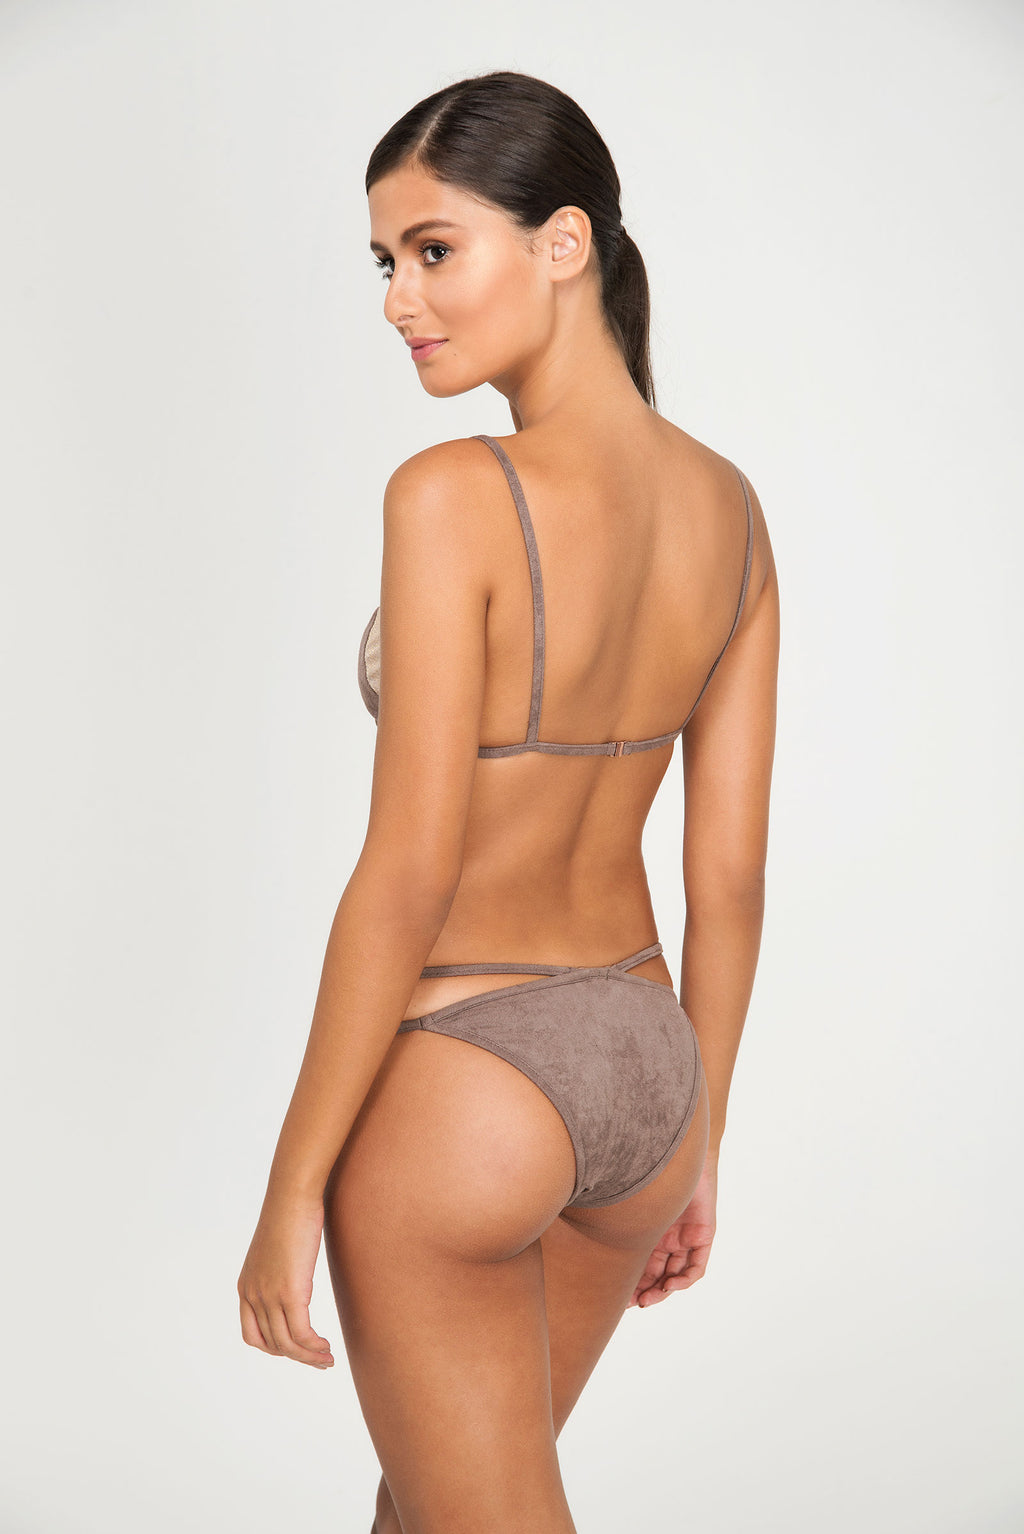 SUEDE PLUME FIXED TRIANGLE TOP | SUEDE PLUME OPTIONAL STRAP THIN BOTTOM - LE BAIN RESORTWEAR